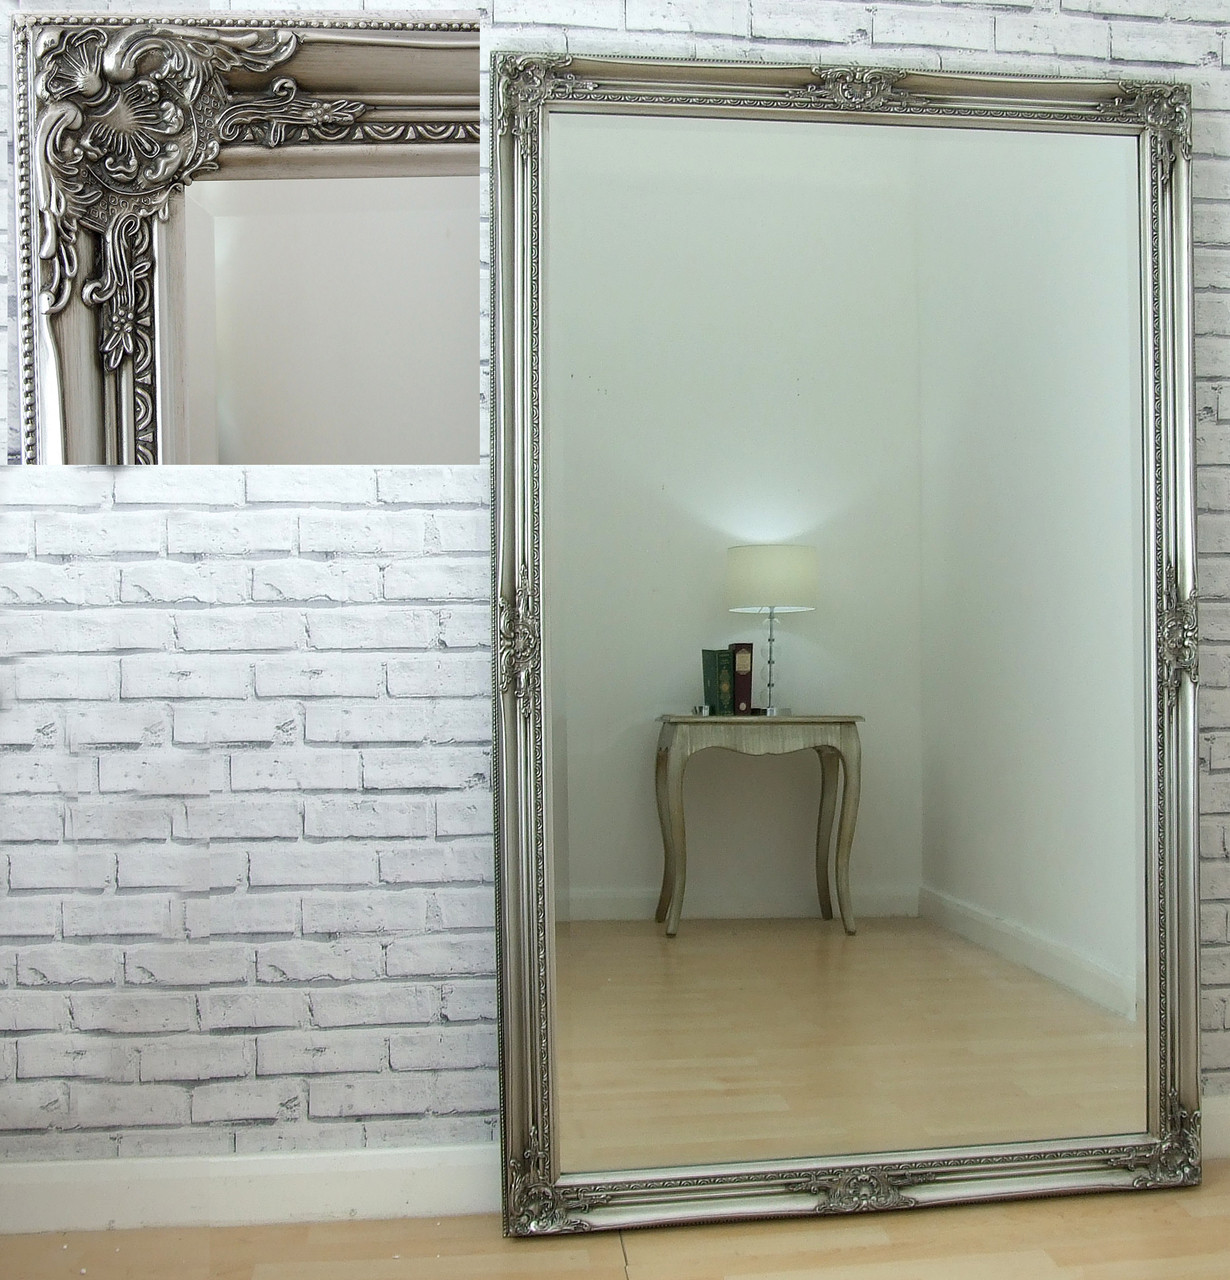 Leon Extra Large Vintage Full Length Wall Leaner Mirror